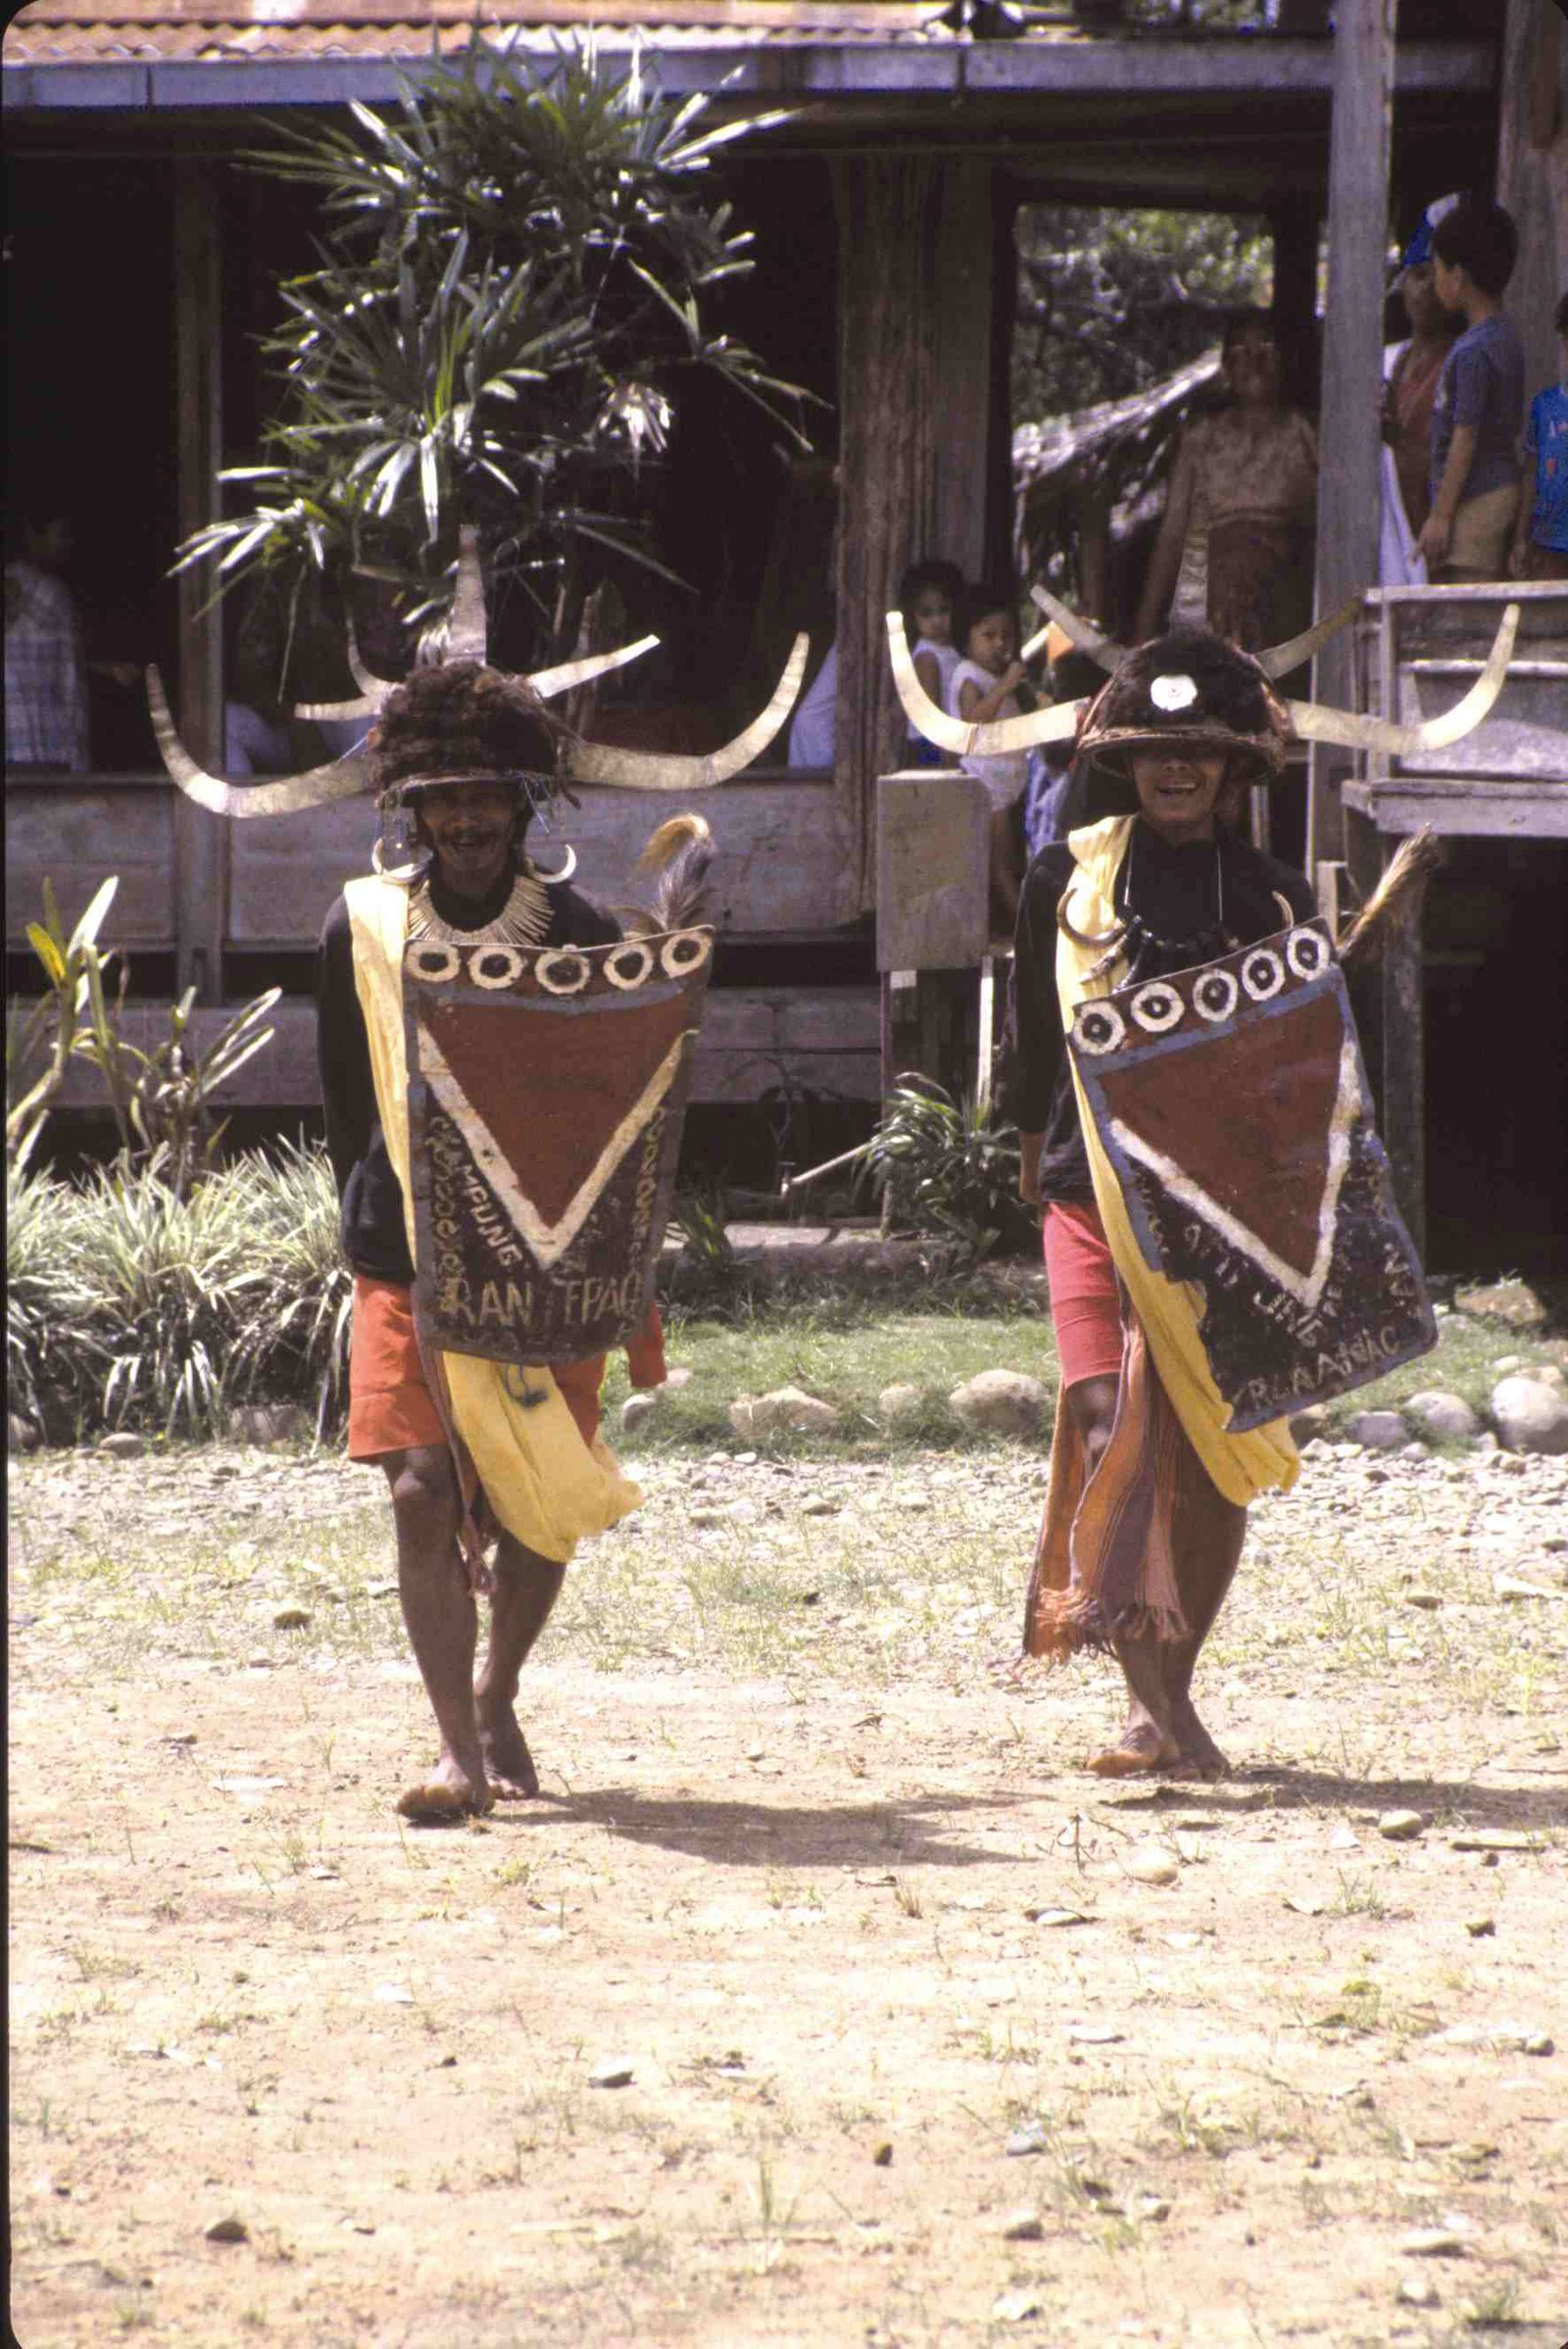 Toraja dancers perform a warrior dance